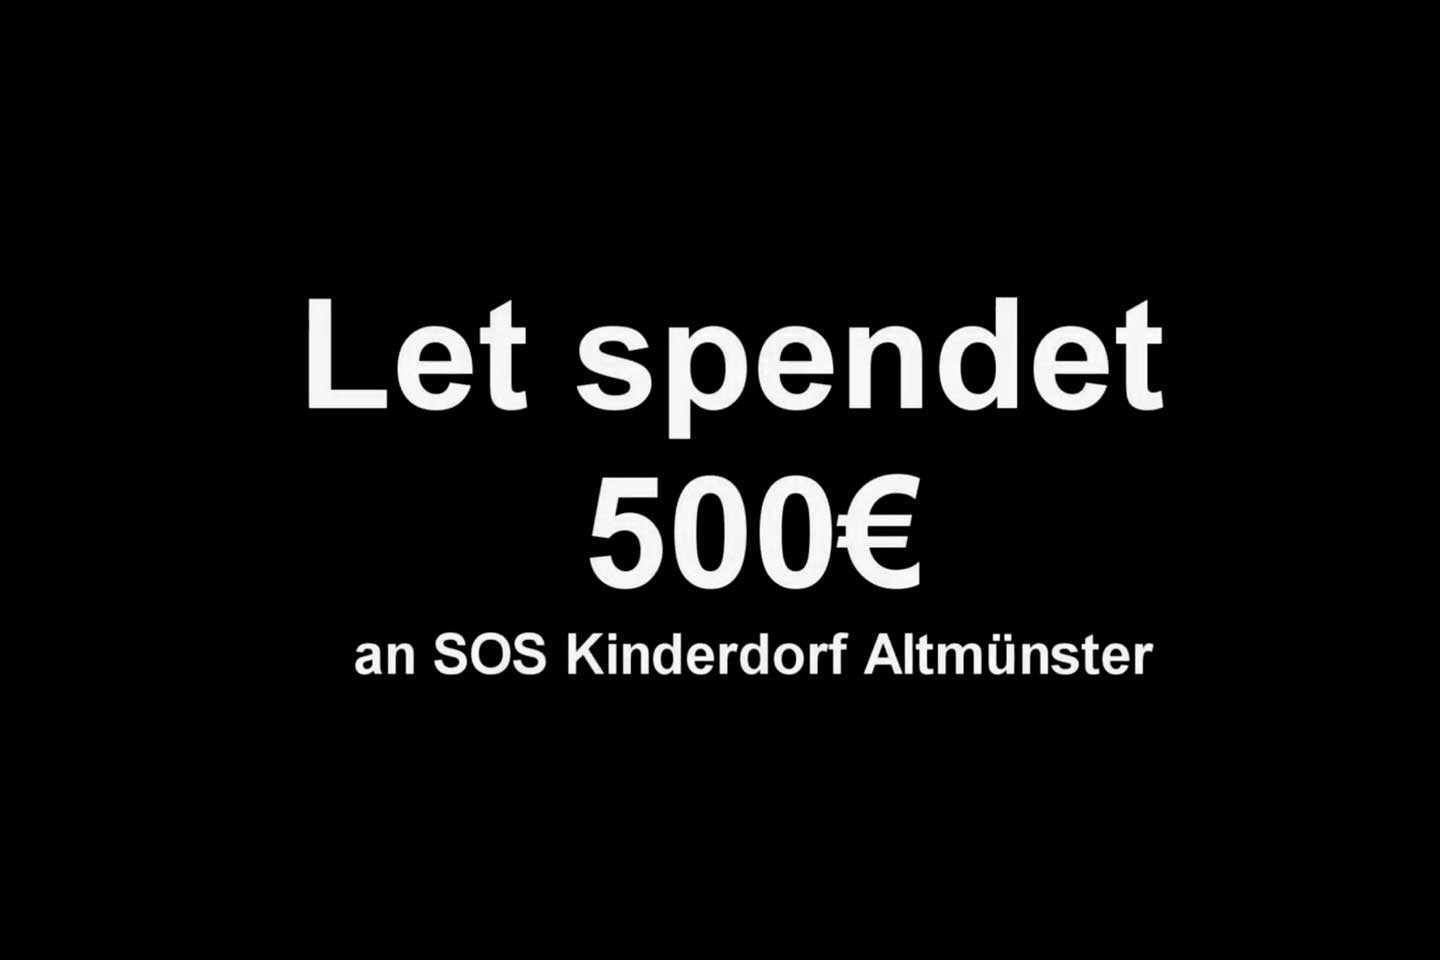 grillpool-challenge-LET-charity-SOS-Kinderdorf